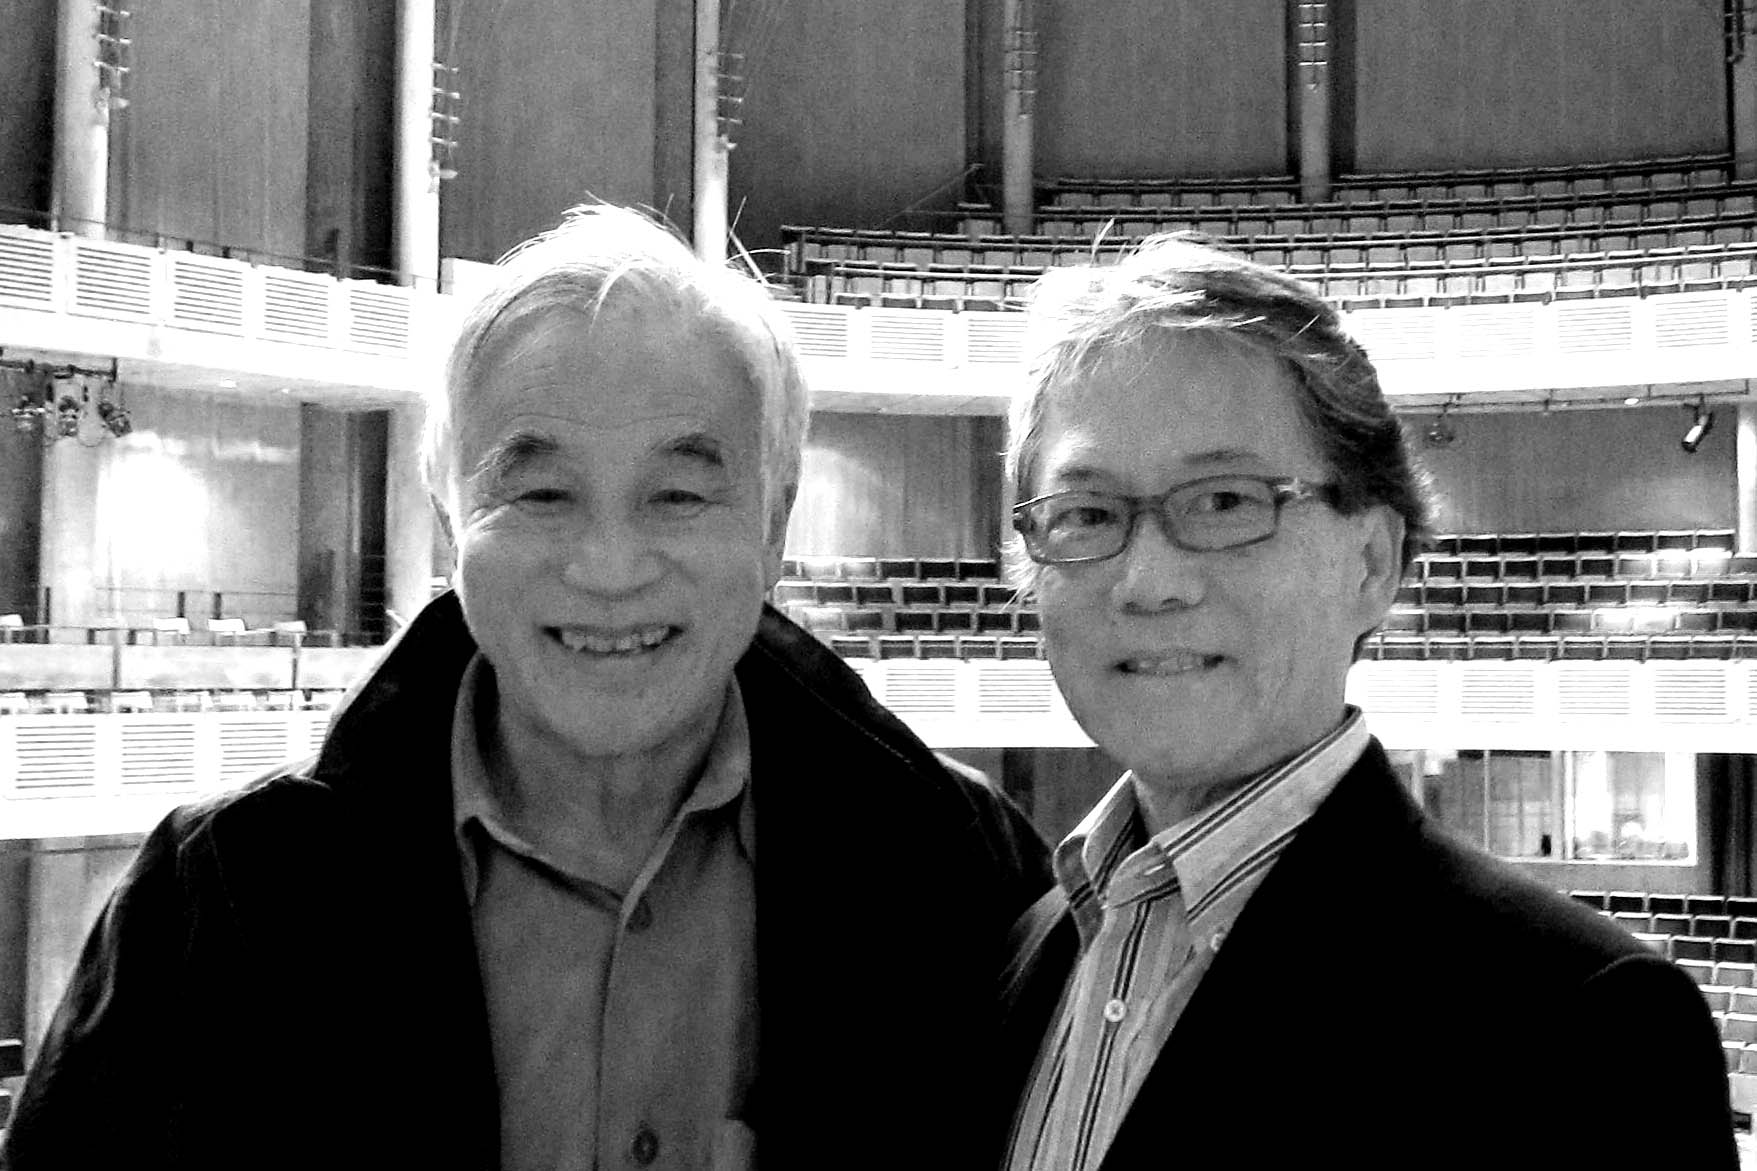 Tom Chan (right) with Chan Centre architect Bing Thom.